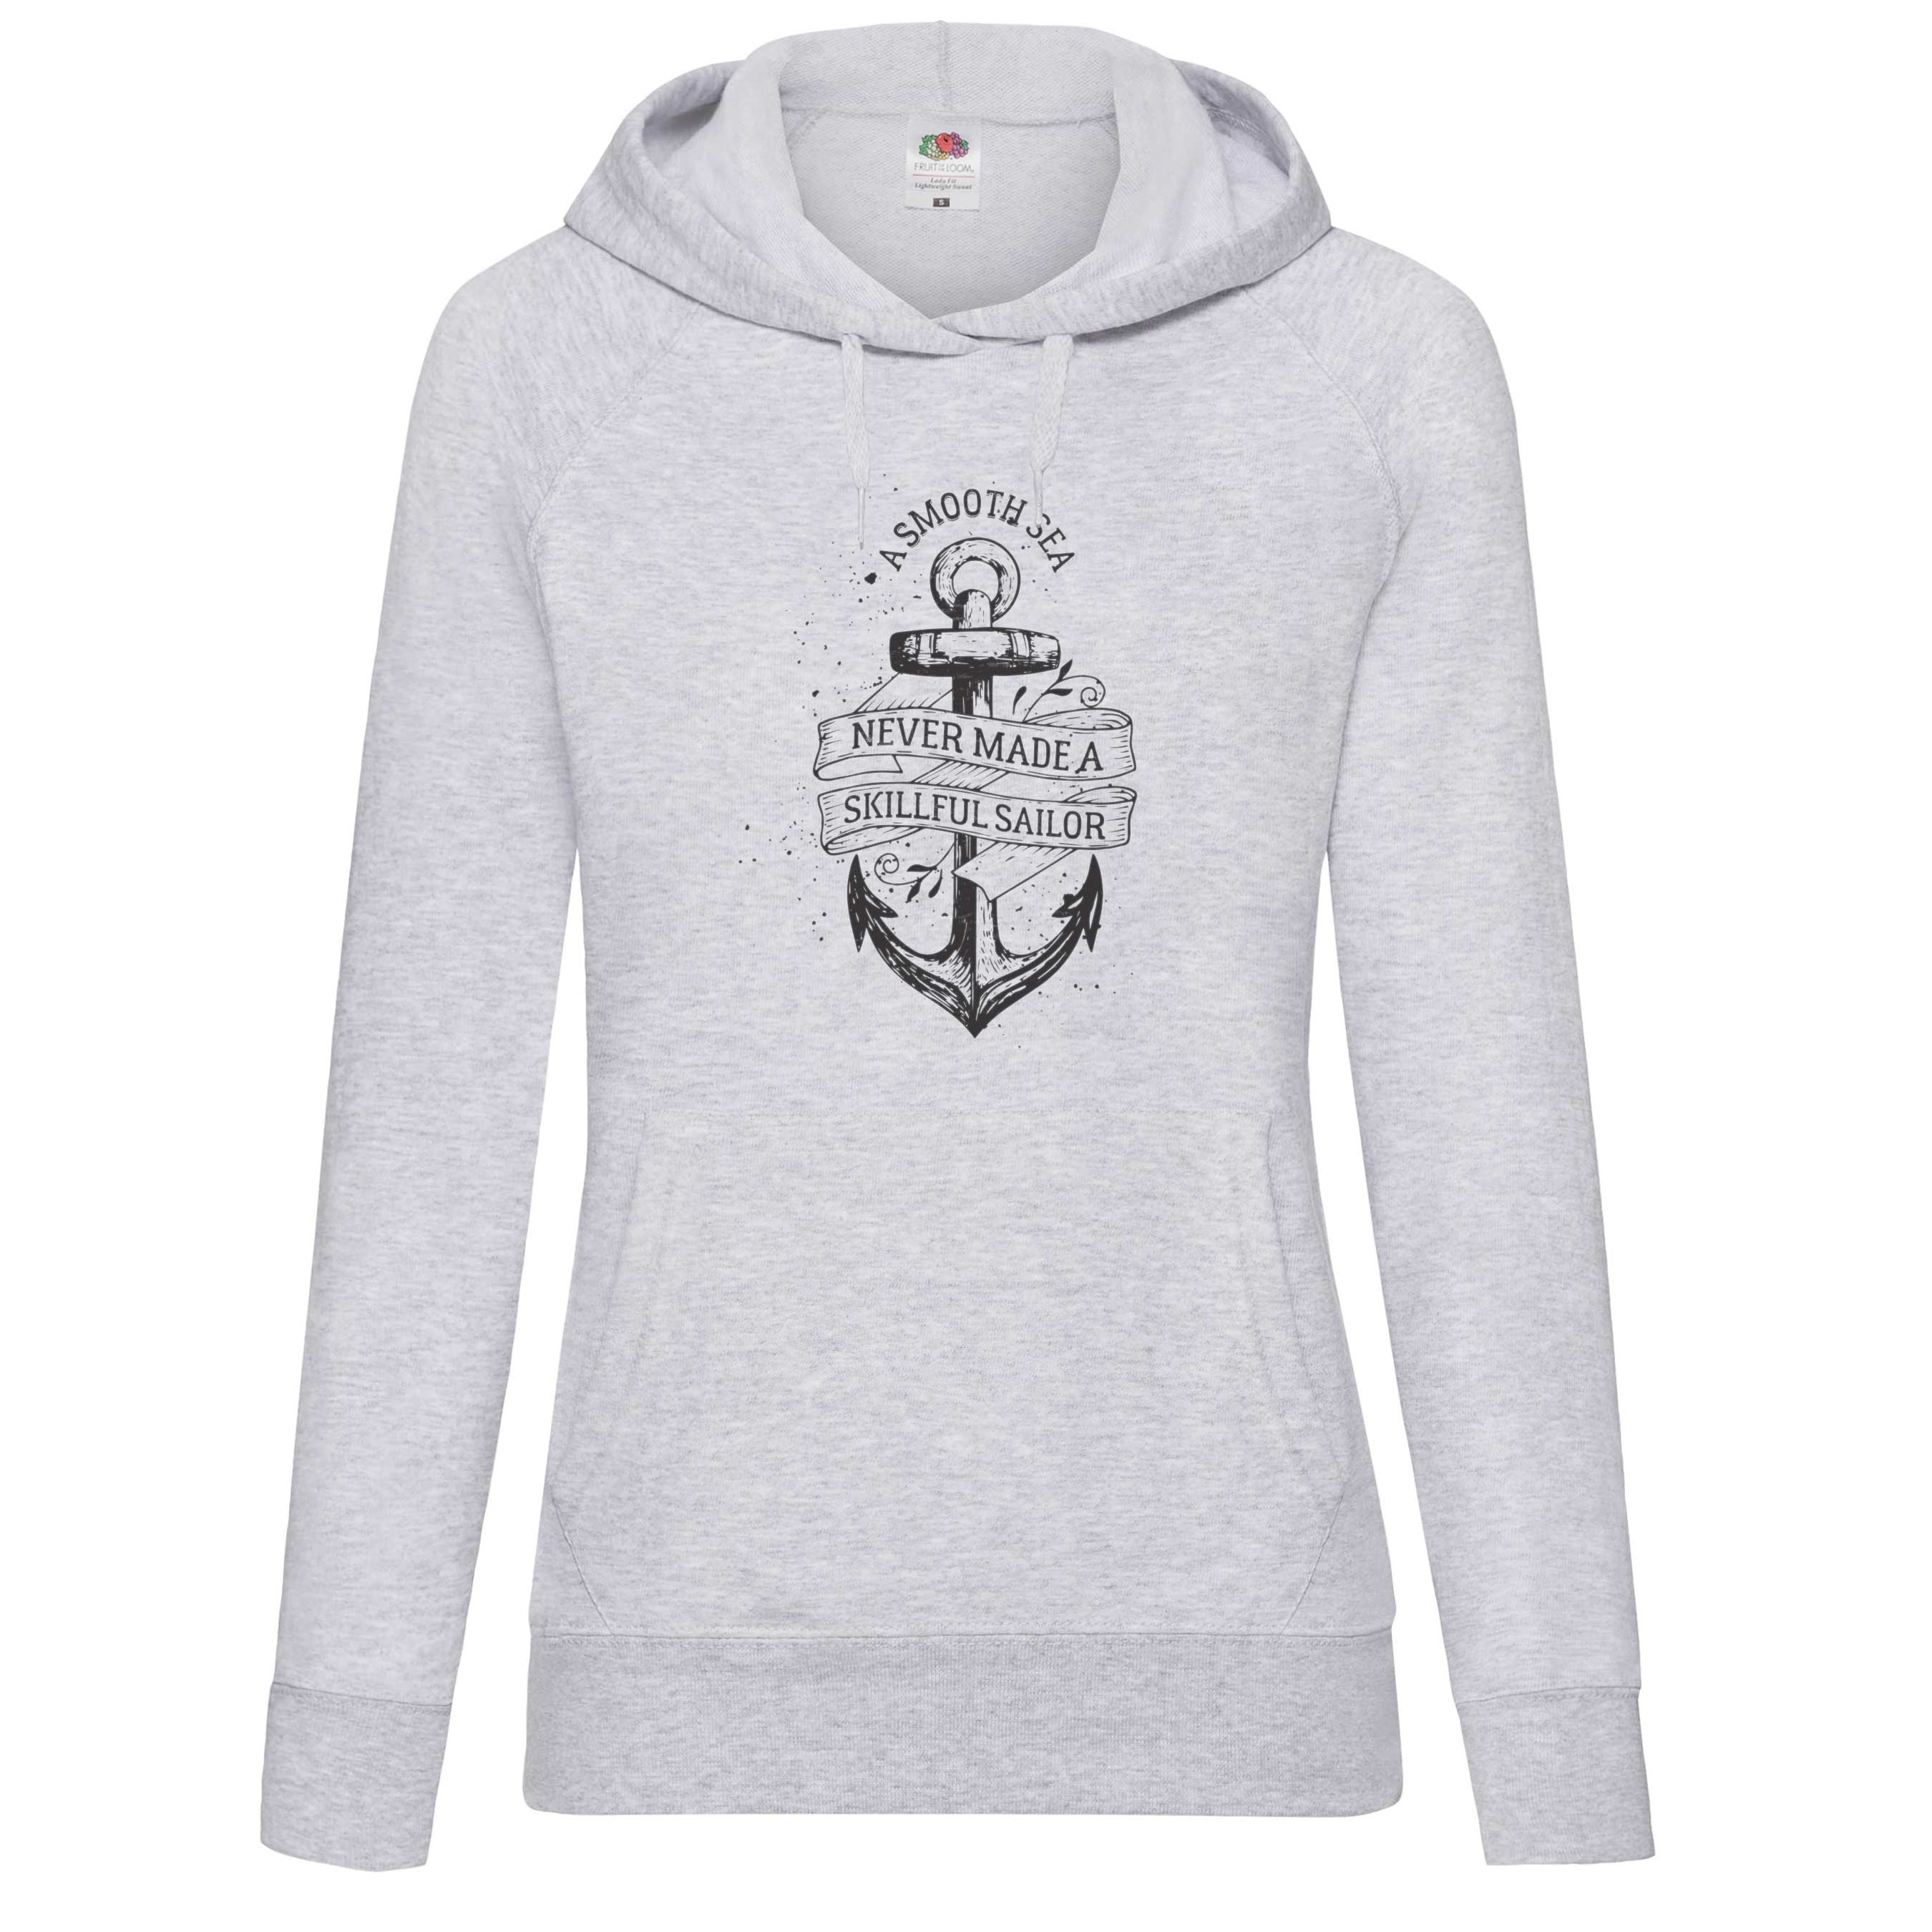 A Smooth design for t-shirt, hoodie & sweatshirt